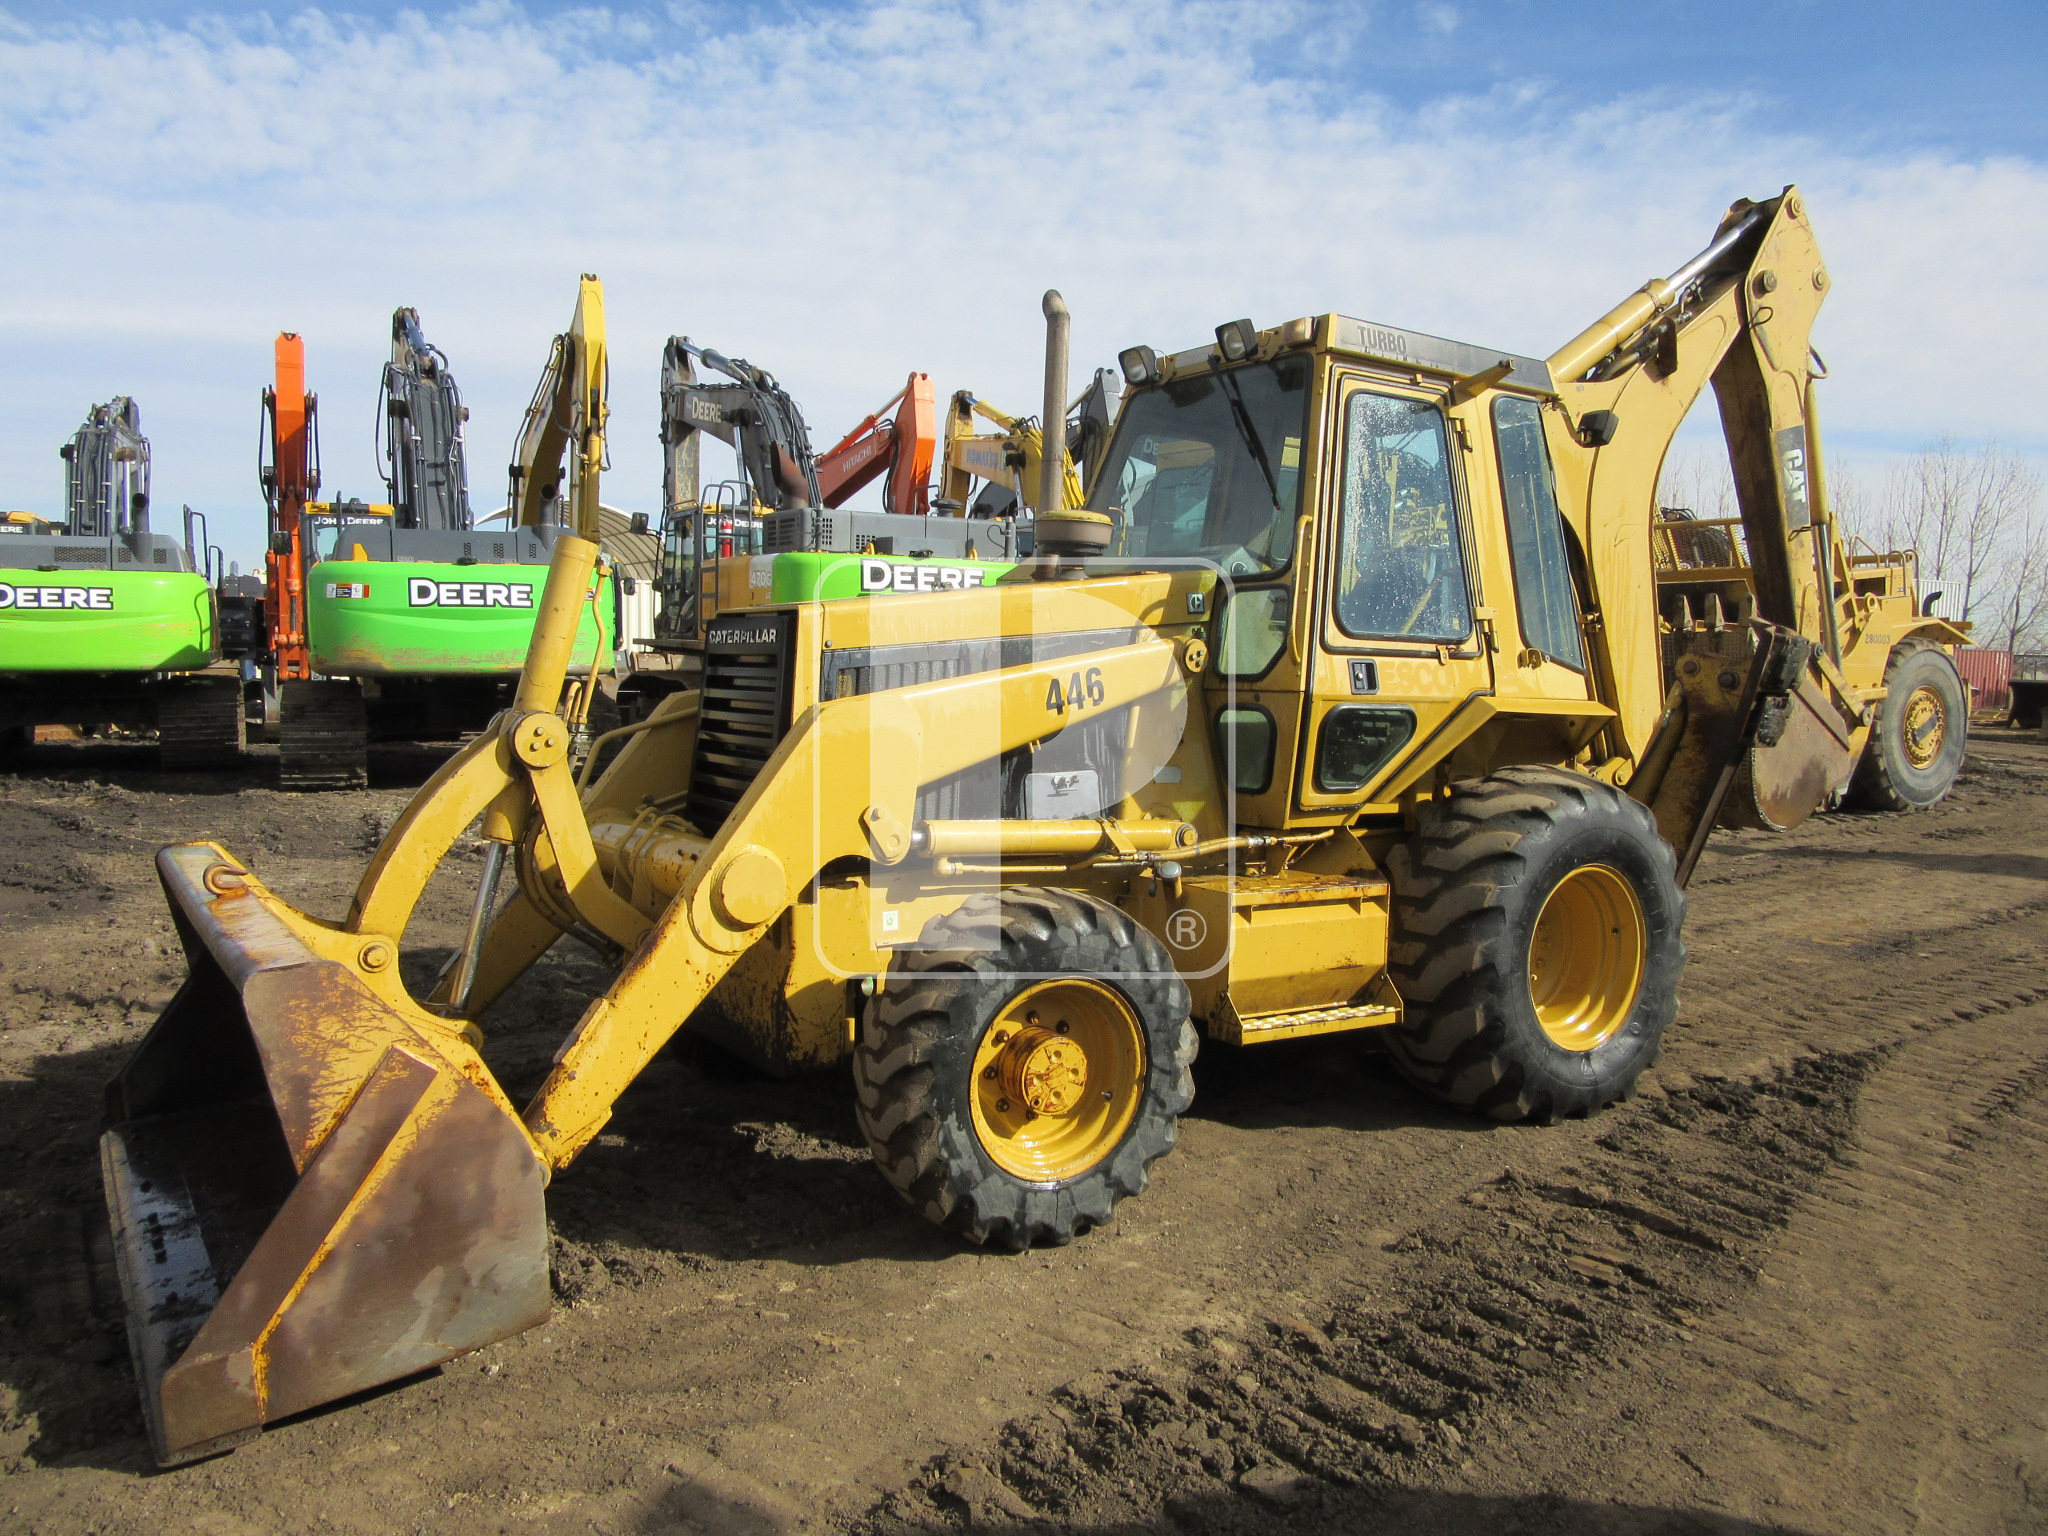 1990 Caterpillar 446 Backhoe